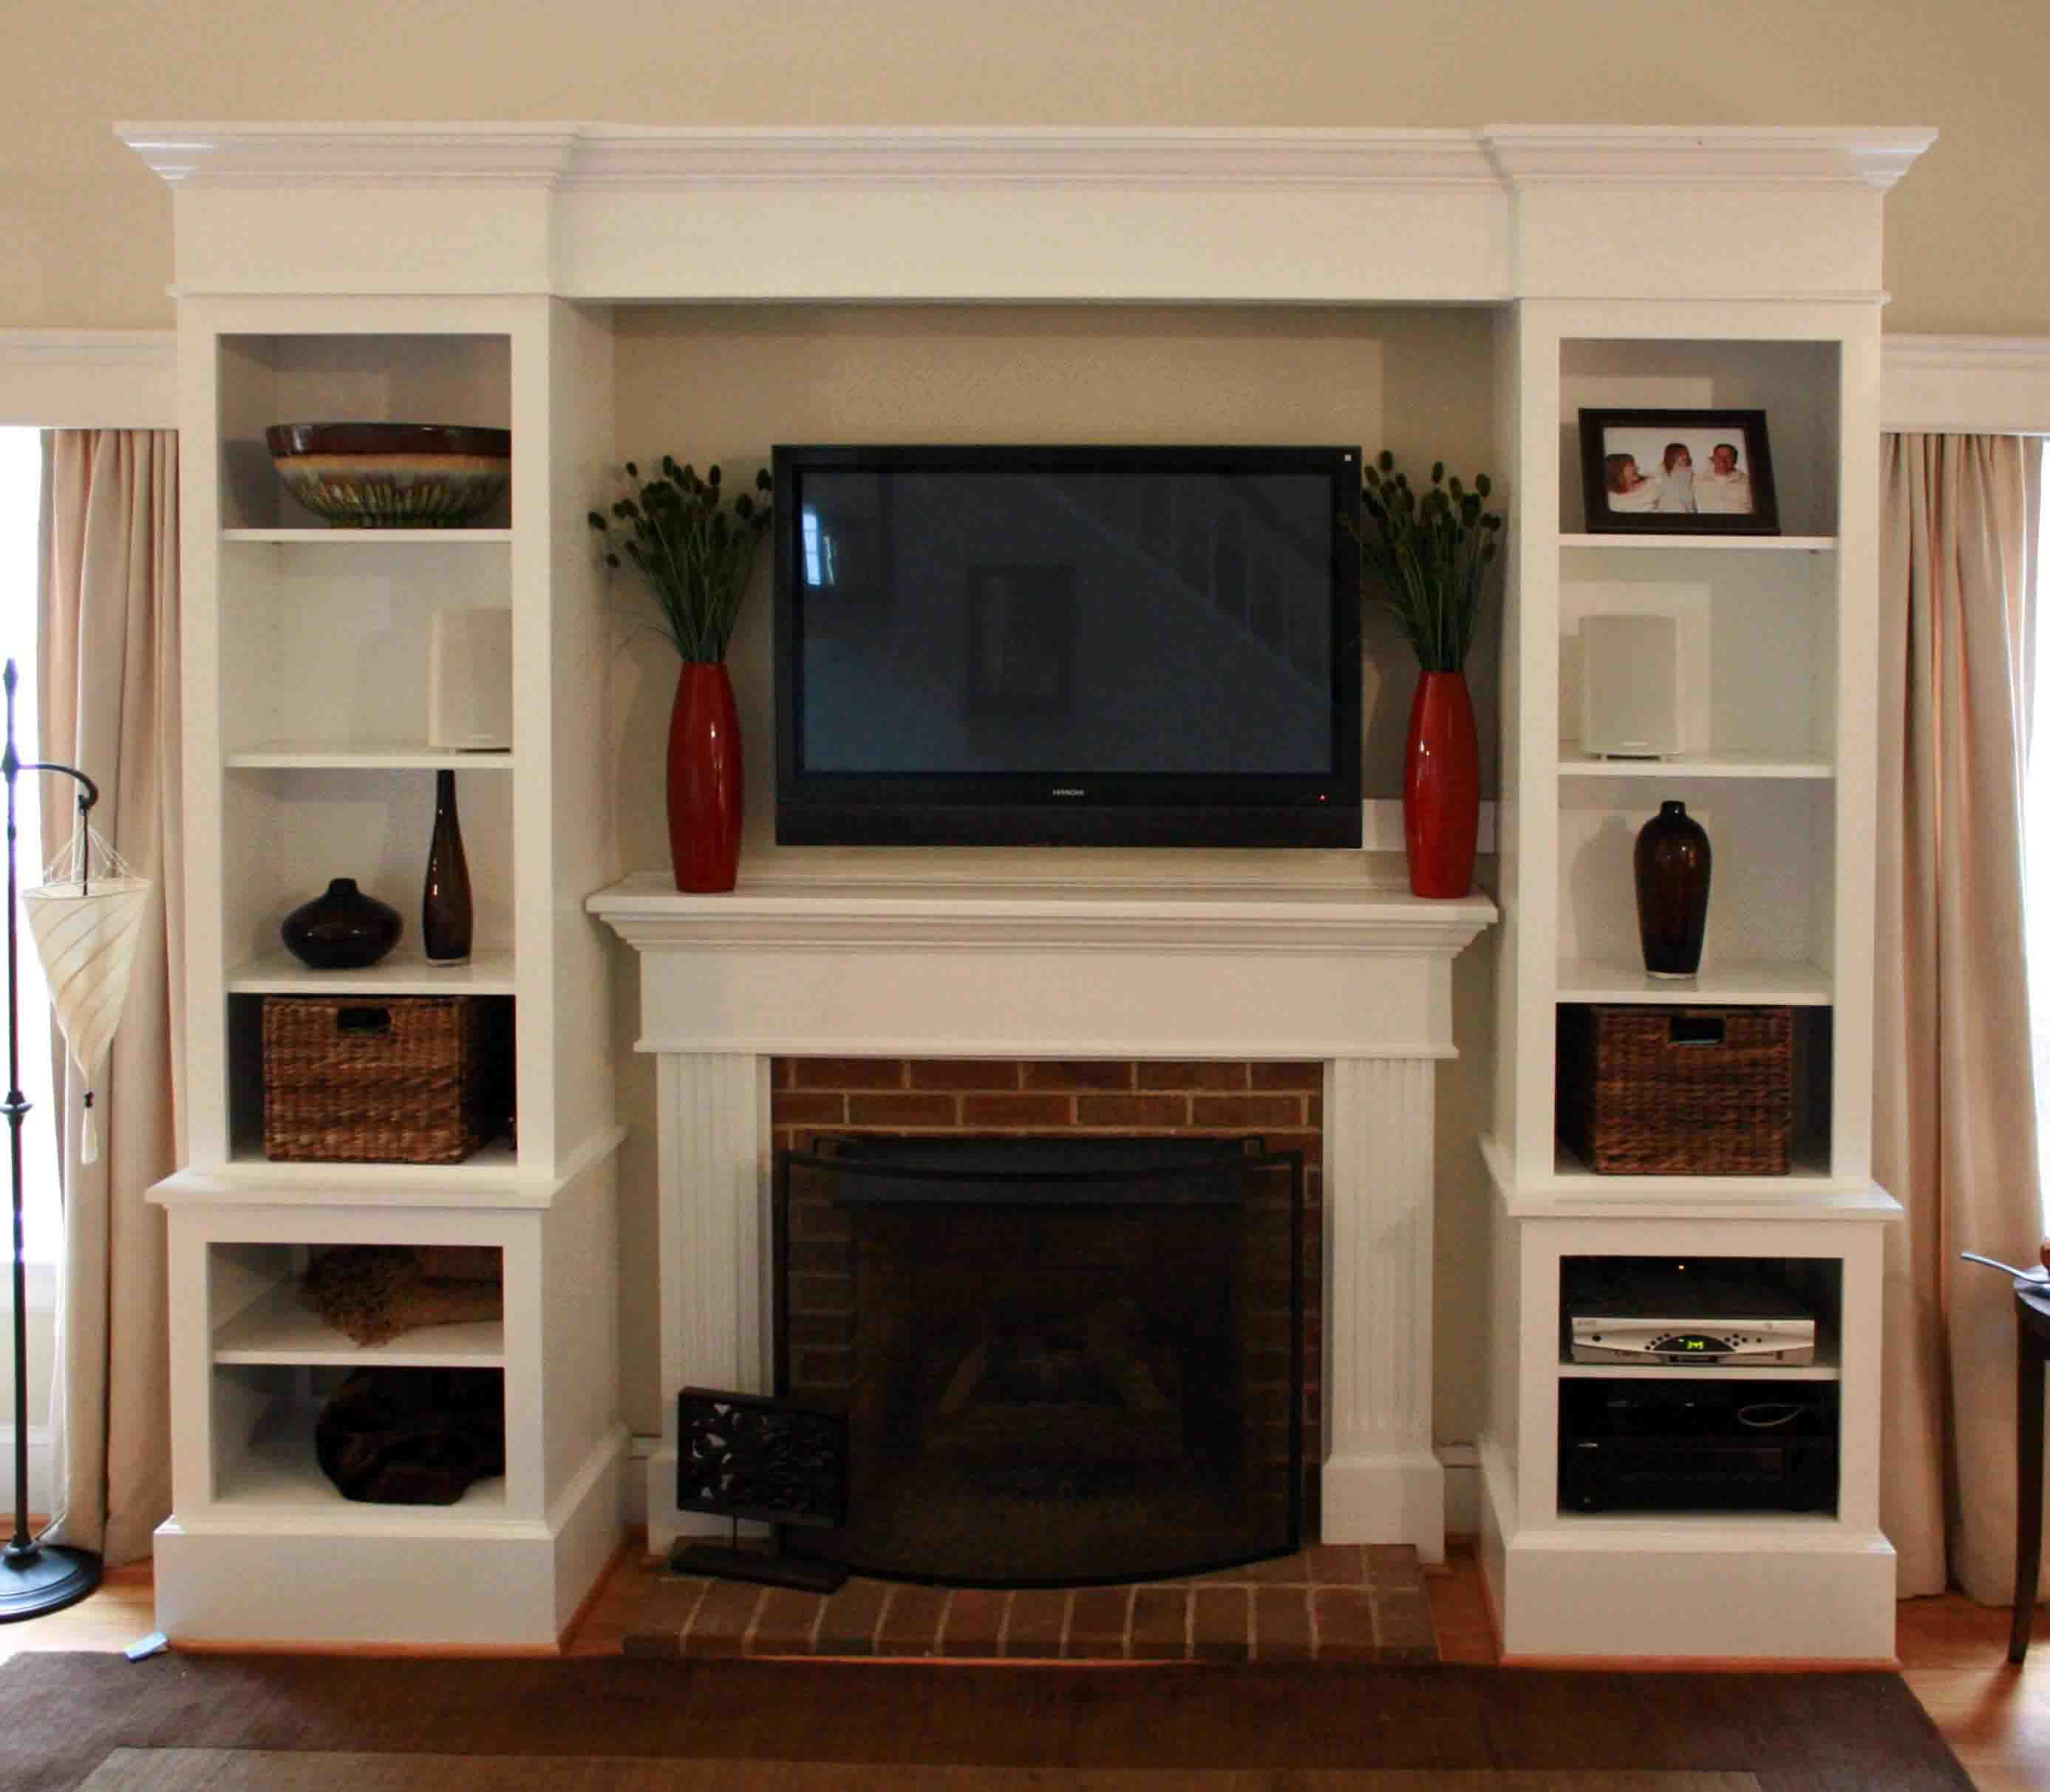 Living Room Entertainment Foxy White Custom Built In Cabinets Fireplace Entertainment Center